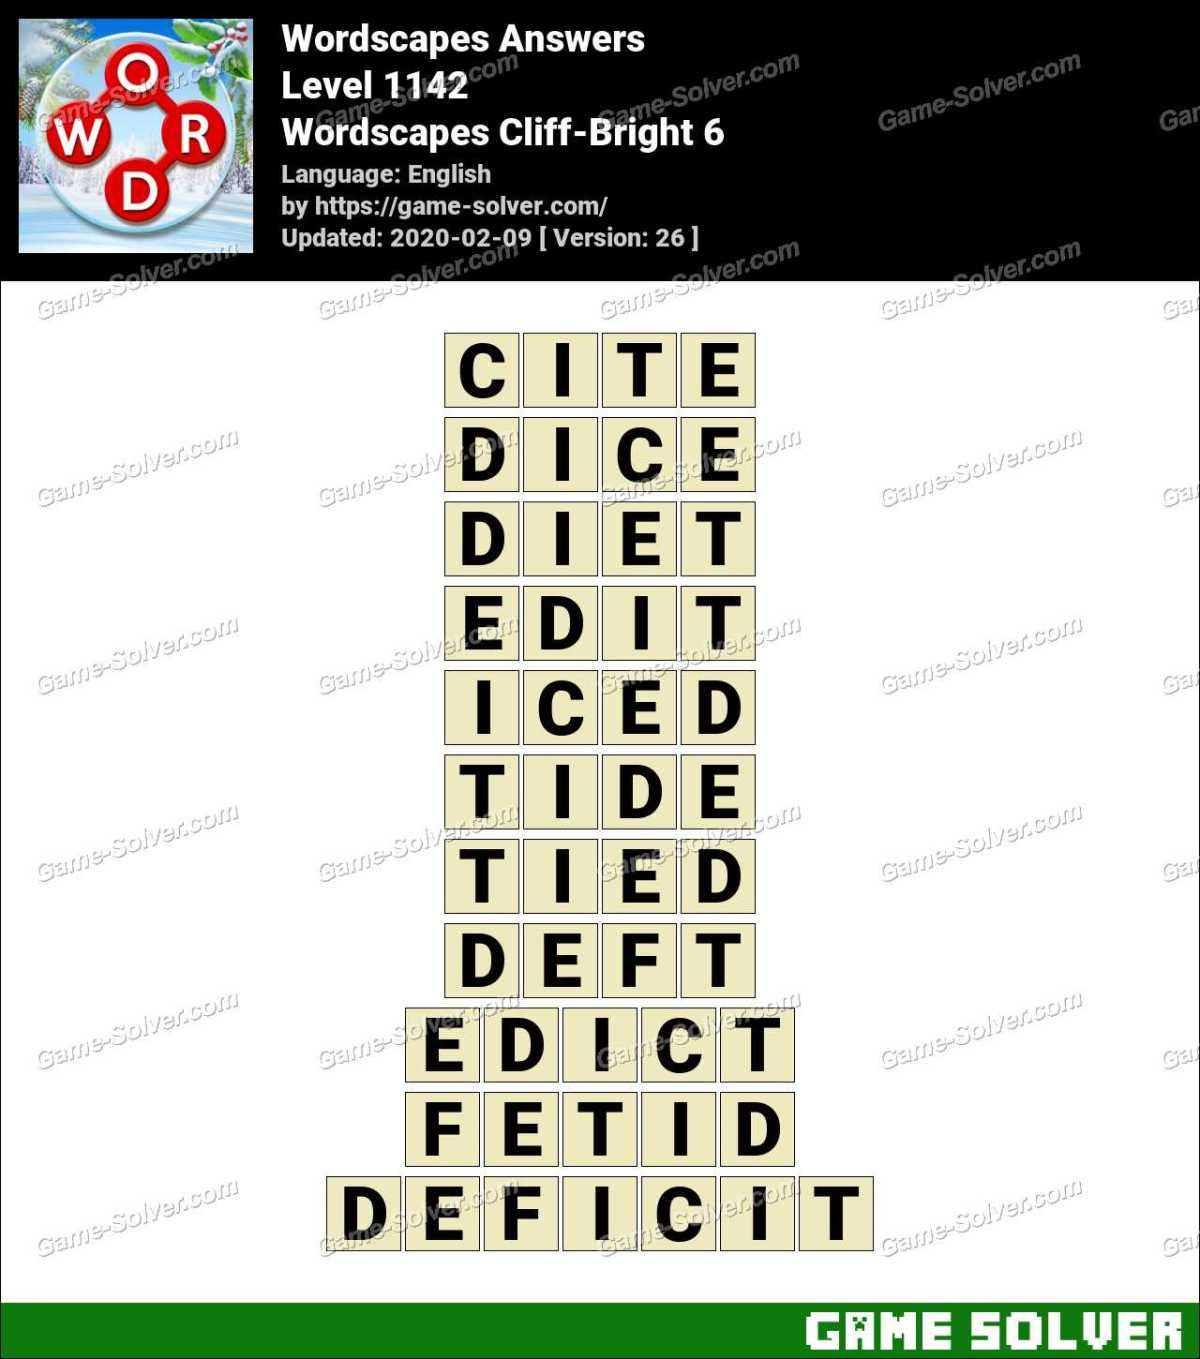 Wordscapes Cliff-Bright 6 Answers